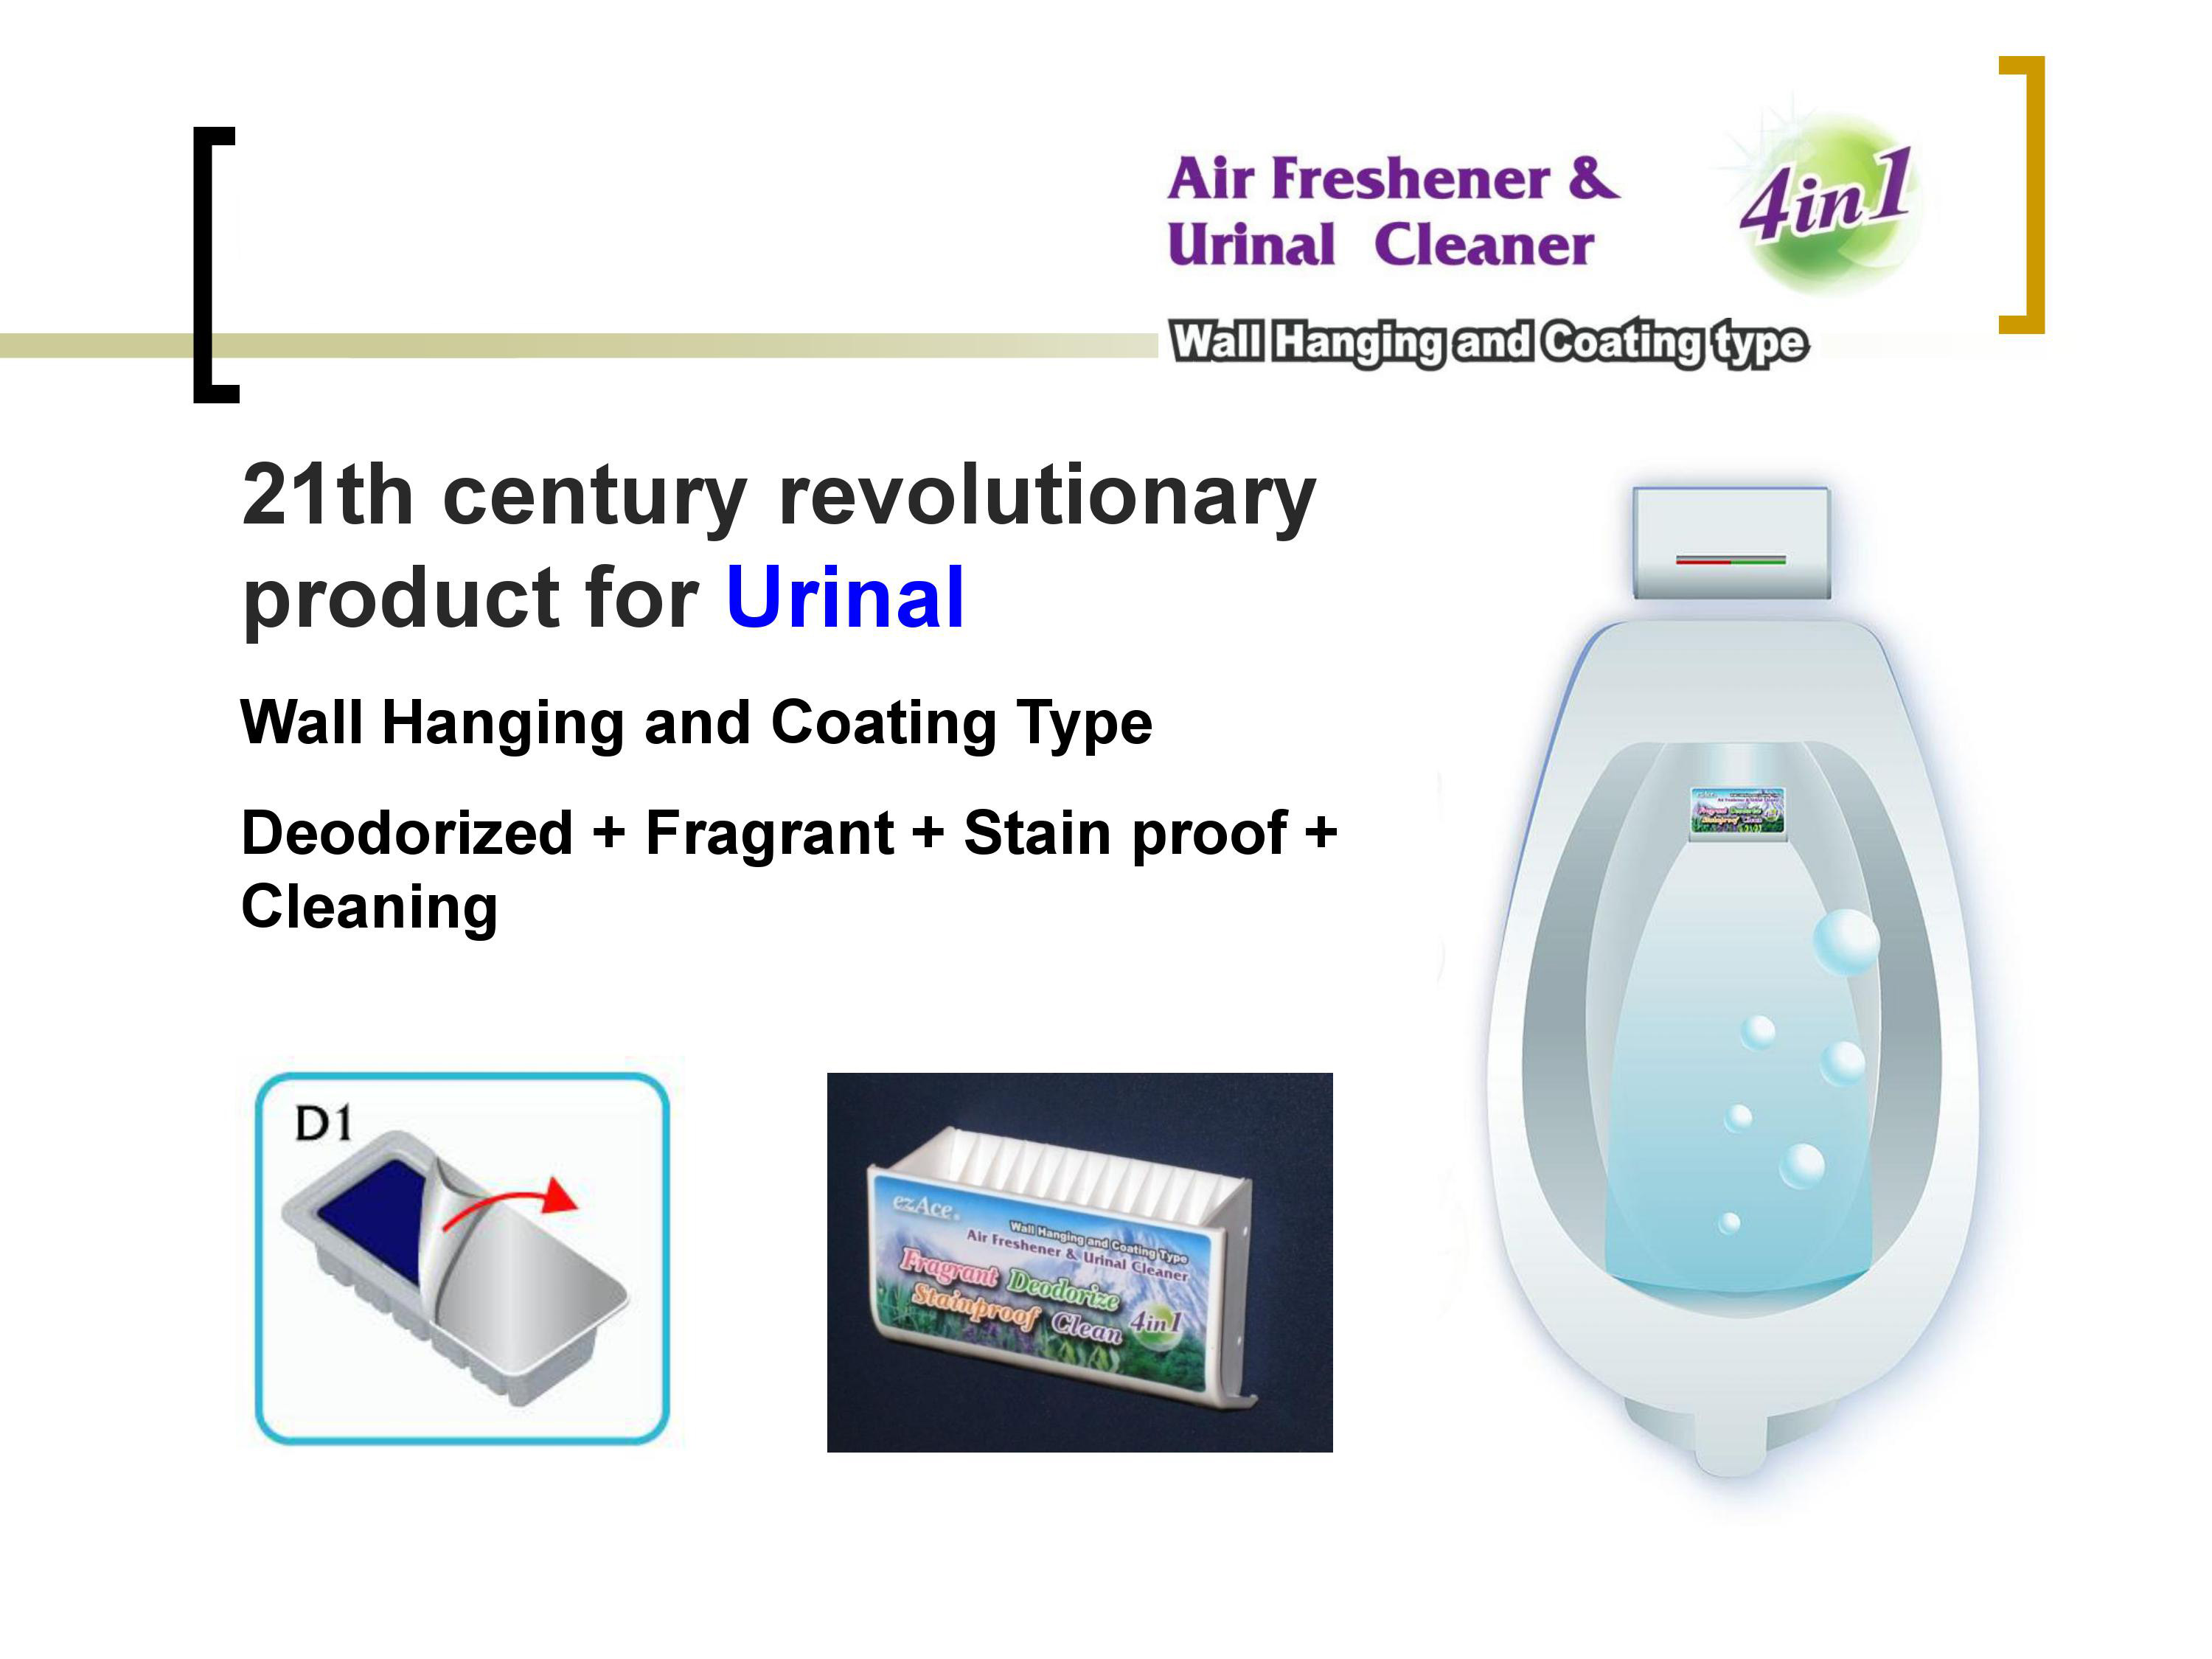 4 in 1 Urinal Sanitizer - Wall Hanging & Coating Type